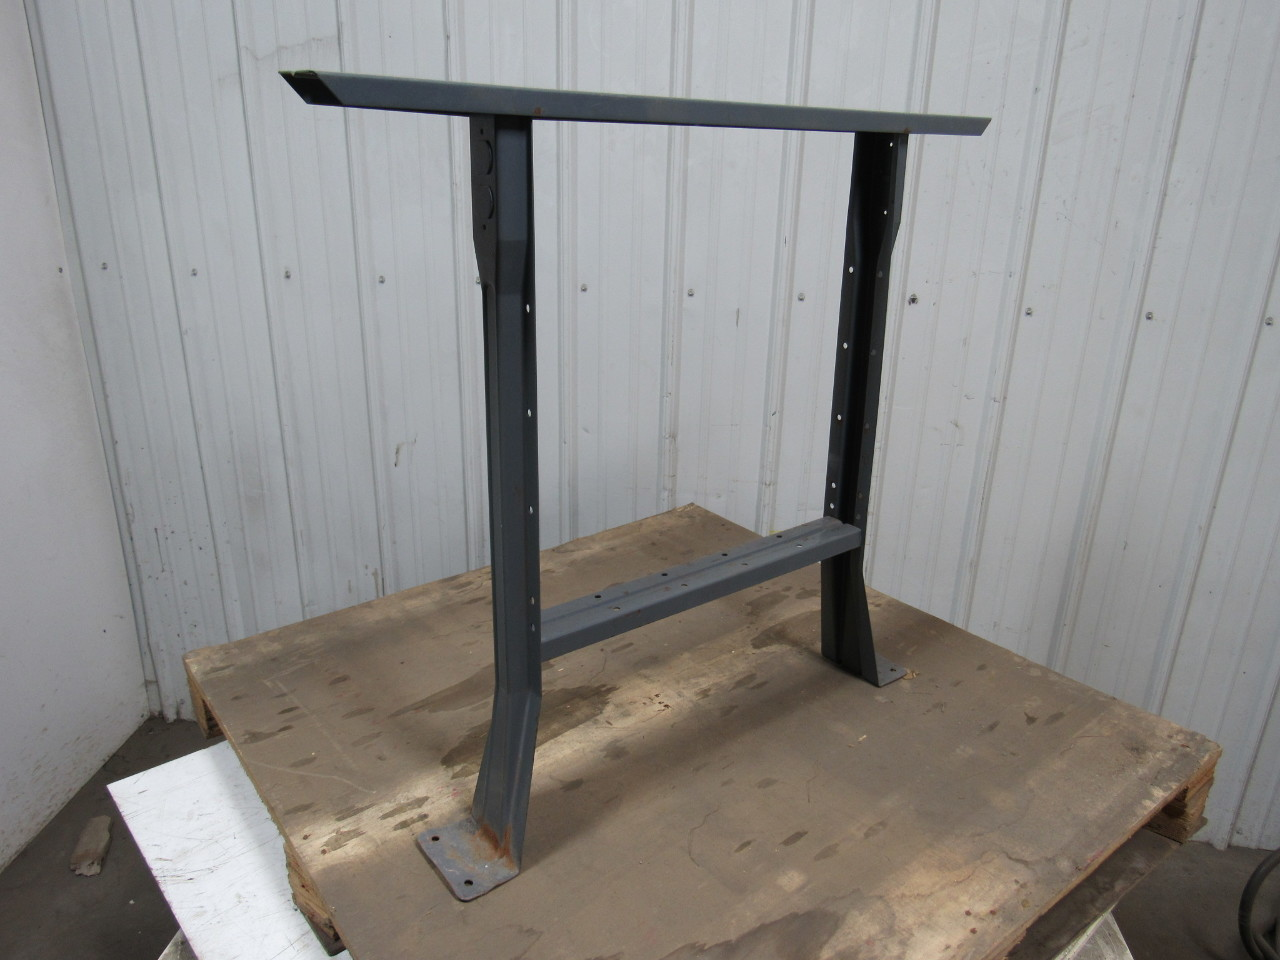 Heavy Duty Industrial Steel Shop Table Legs Workbench Legs 32 Tall Lot Of 2 Ebay